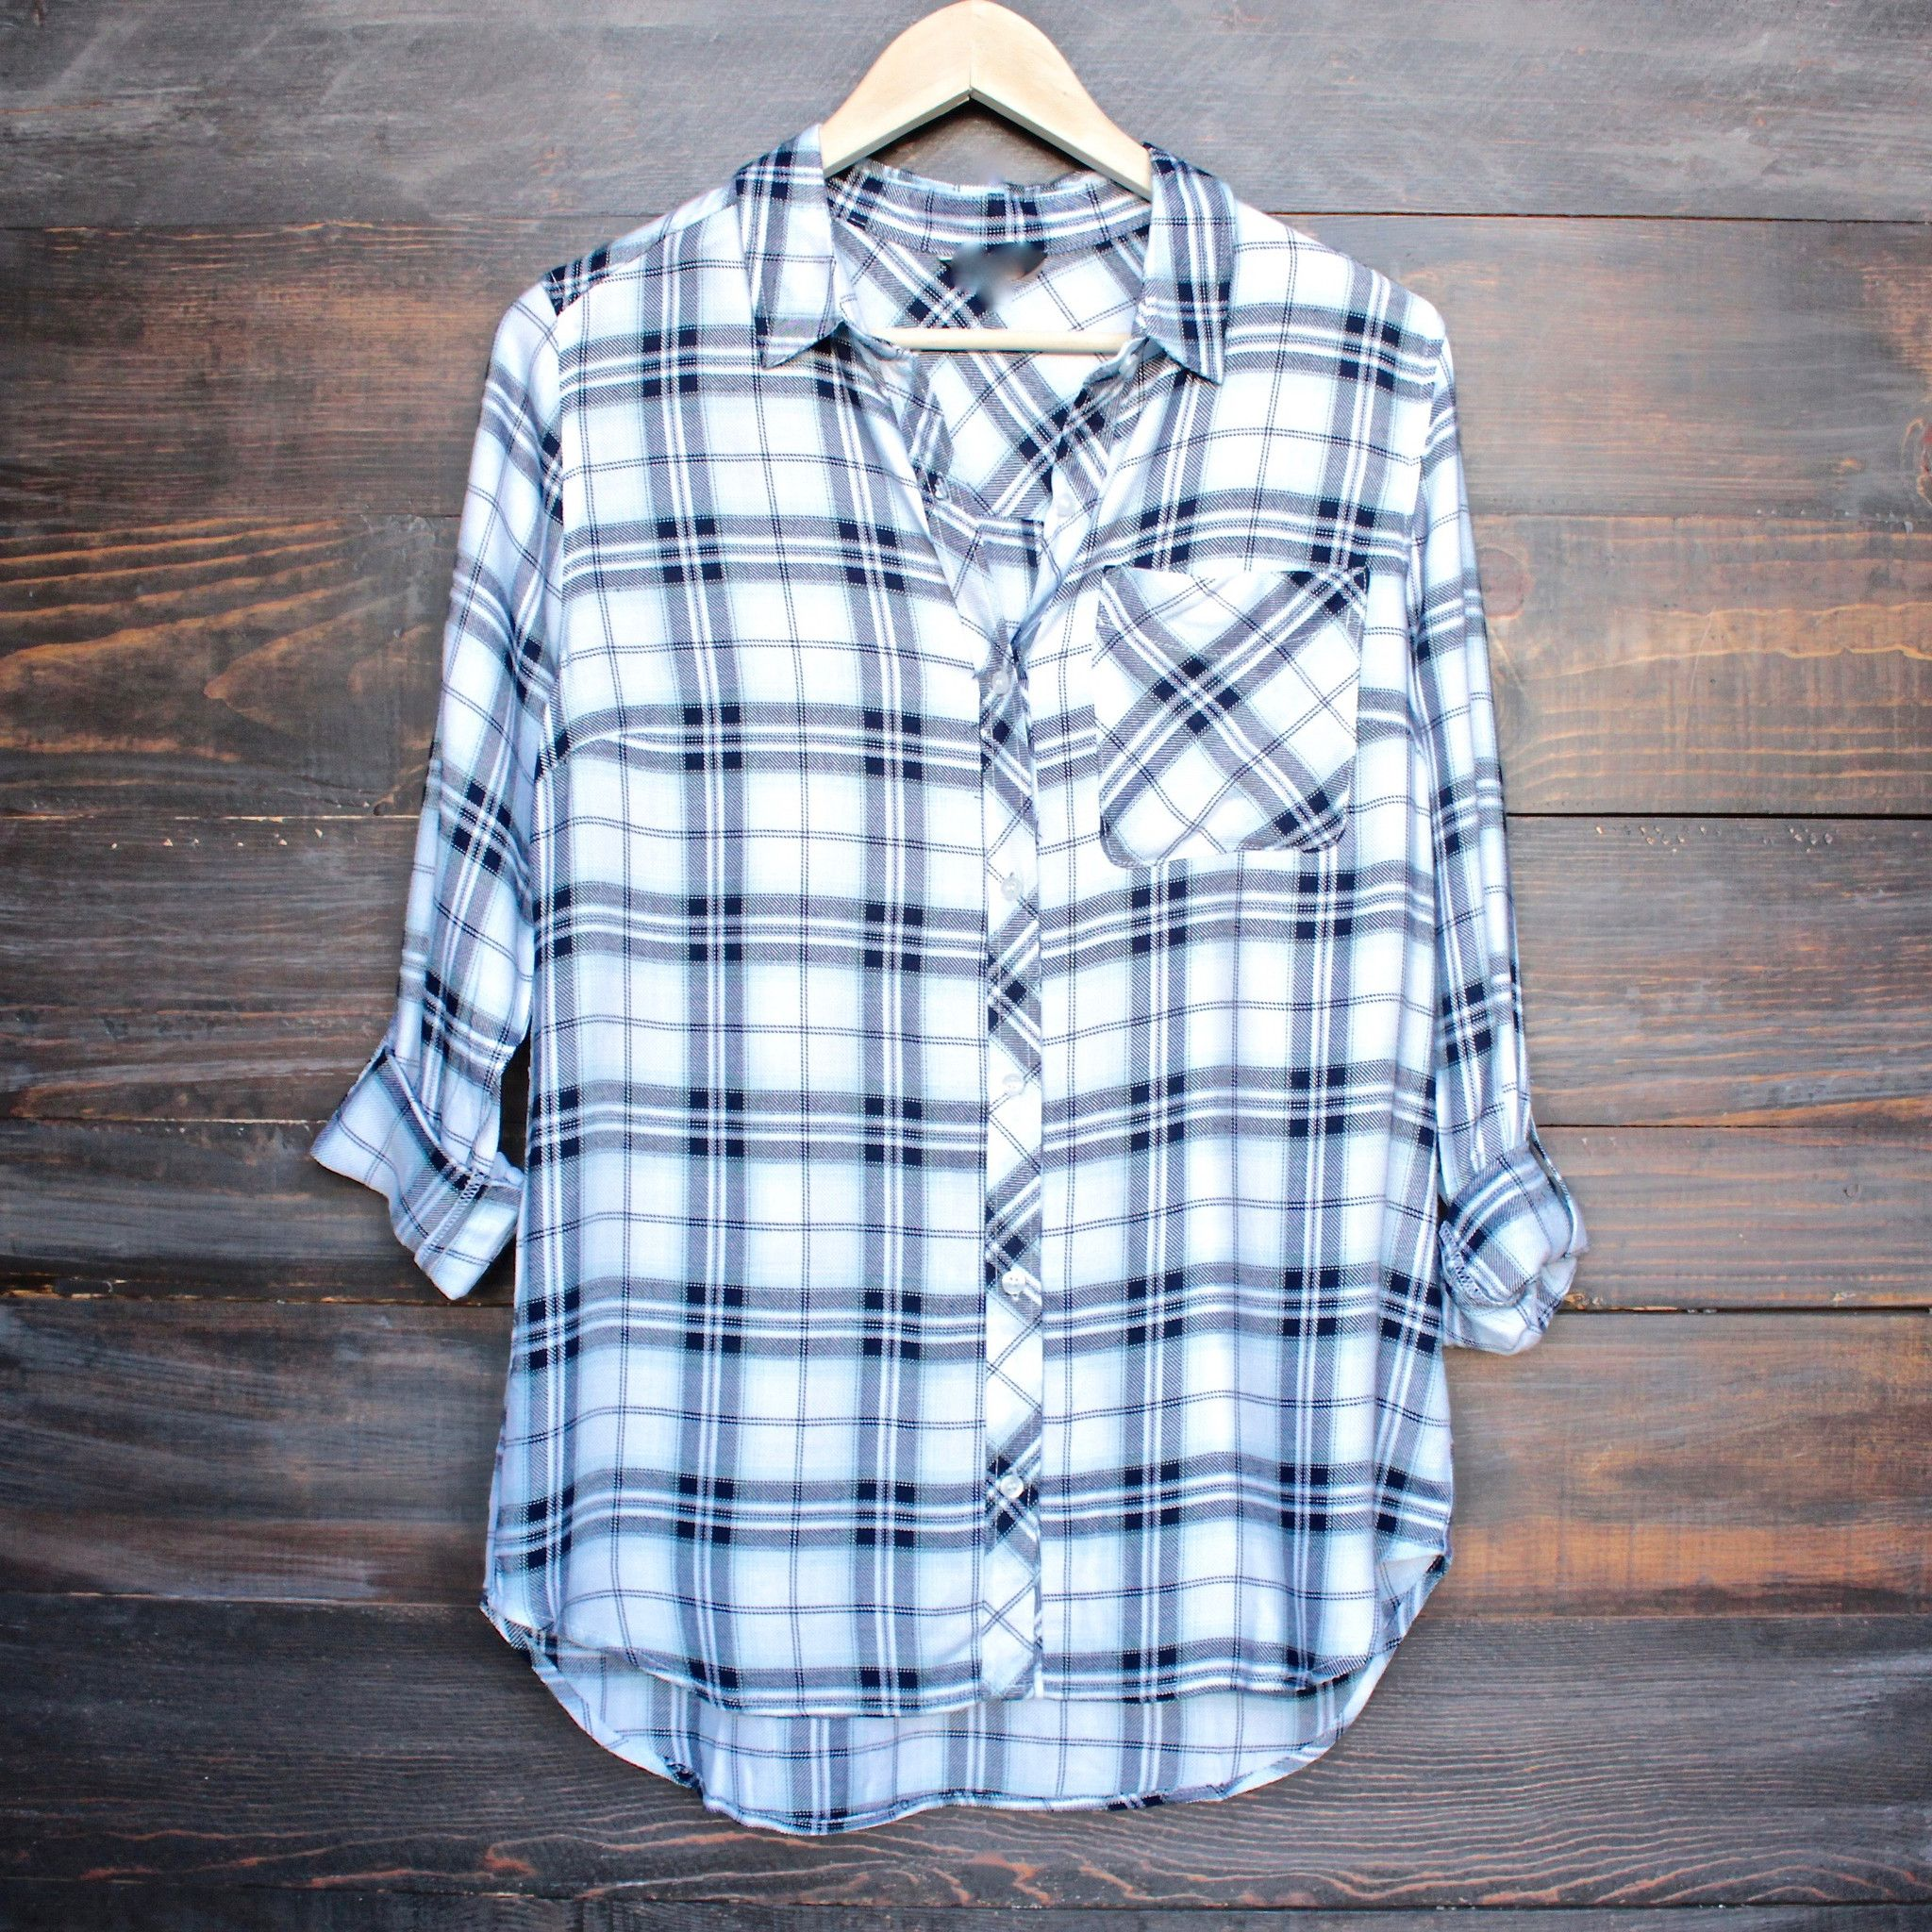 Flannel shirt women  Working at the rails button up plaid shirt more colors  Plaid